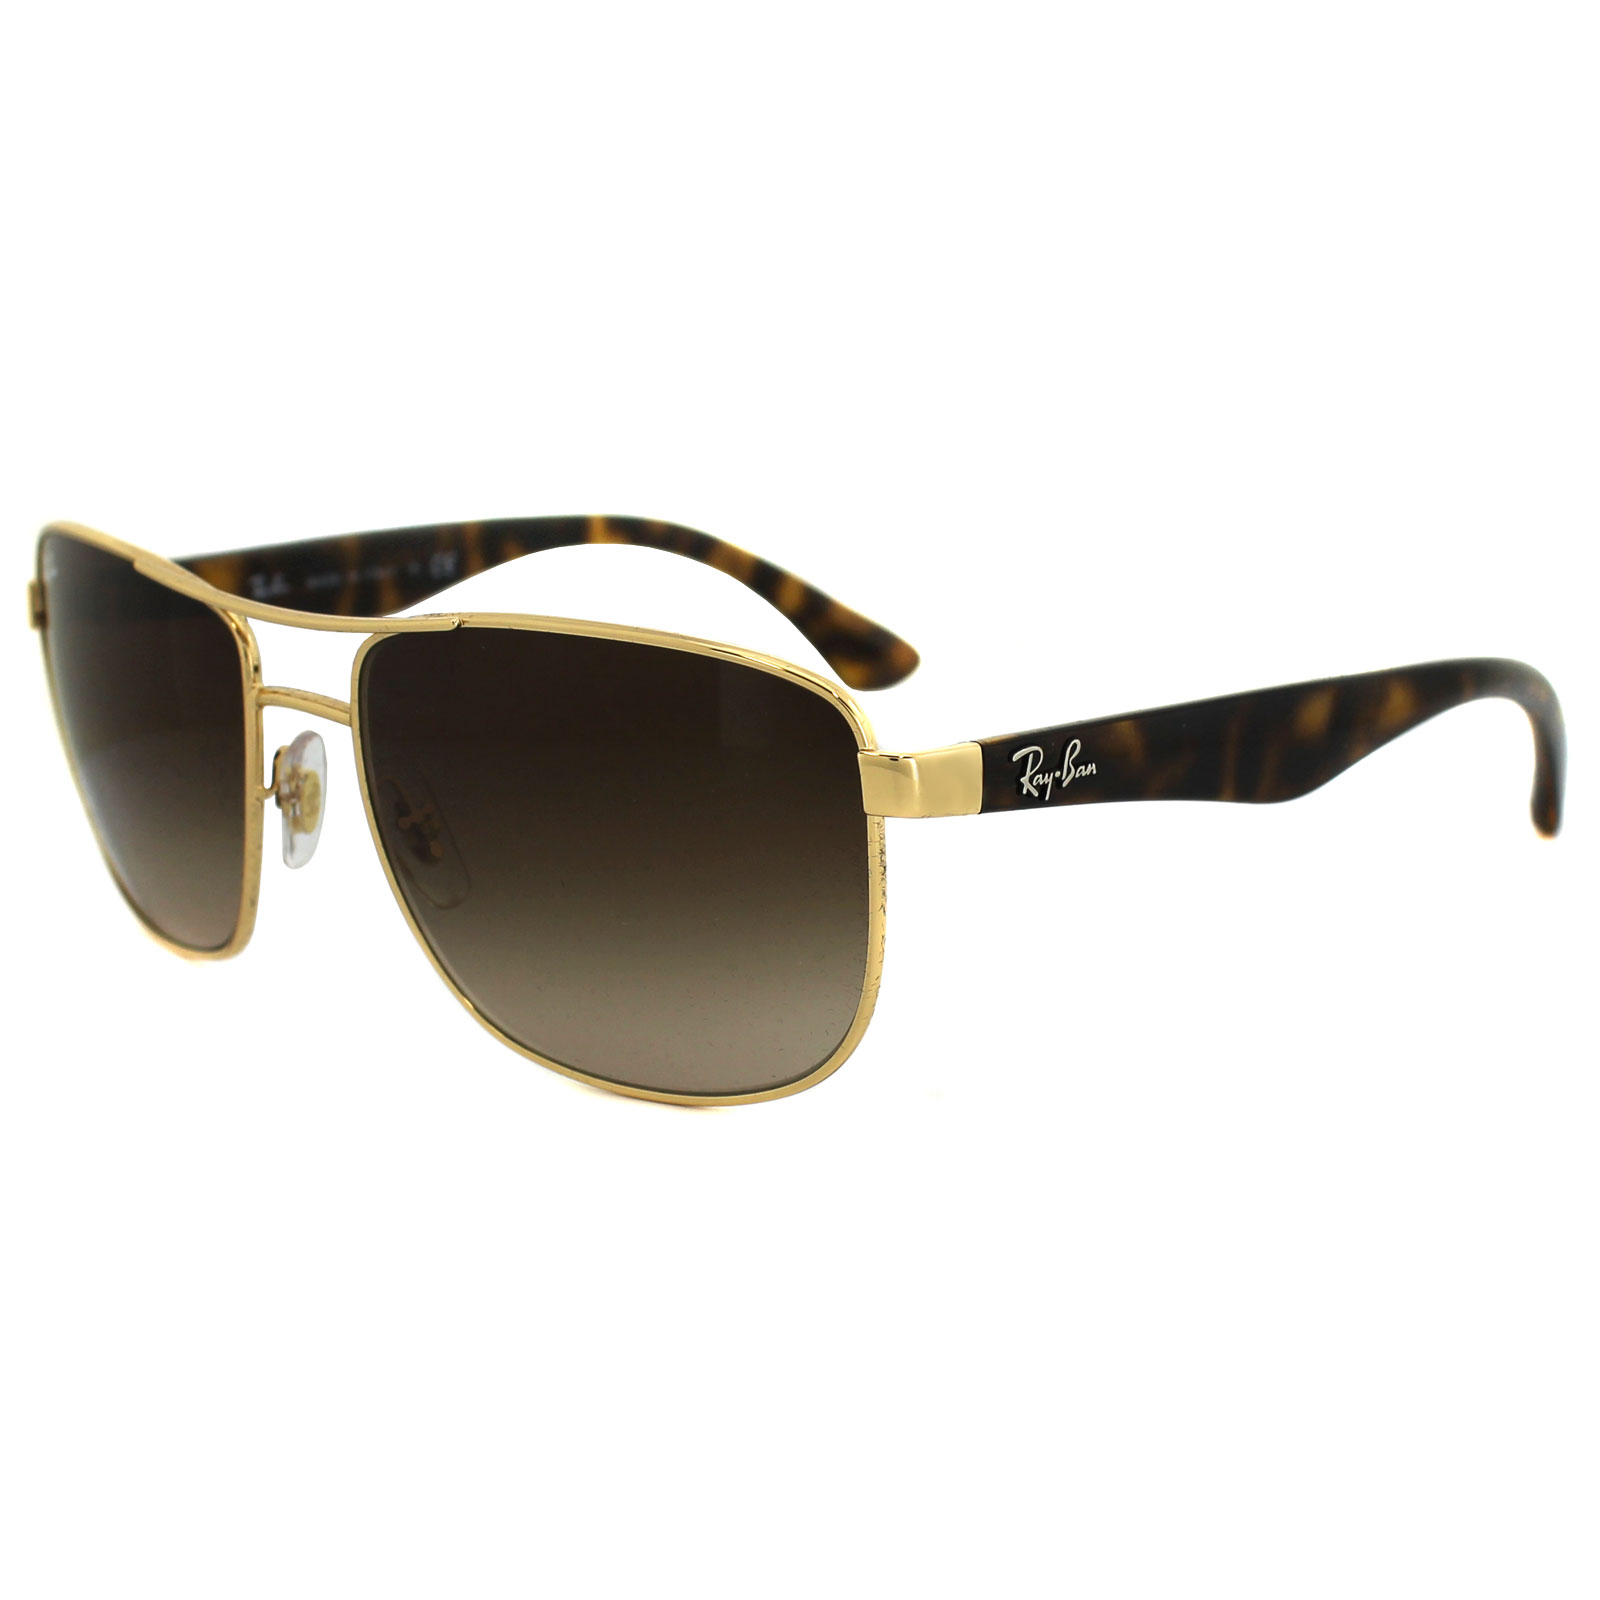 ad57181b6e Sentinel Ray-Ban Sunglasses 3533 001 13 Gold Tortoise Brown Gradient